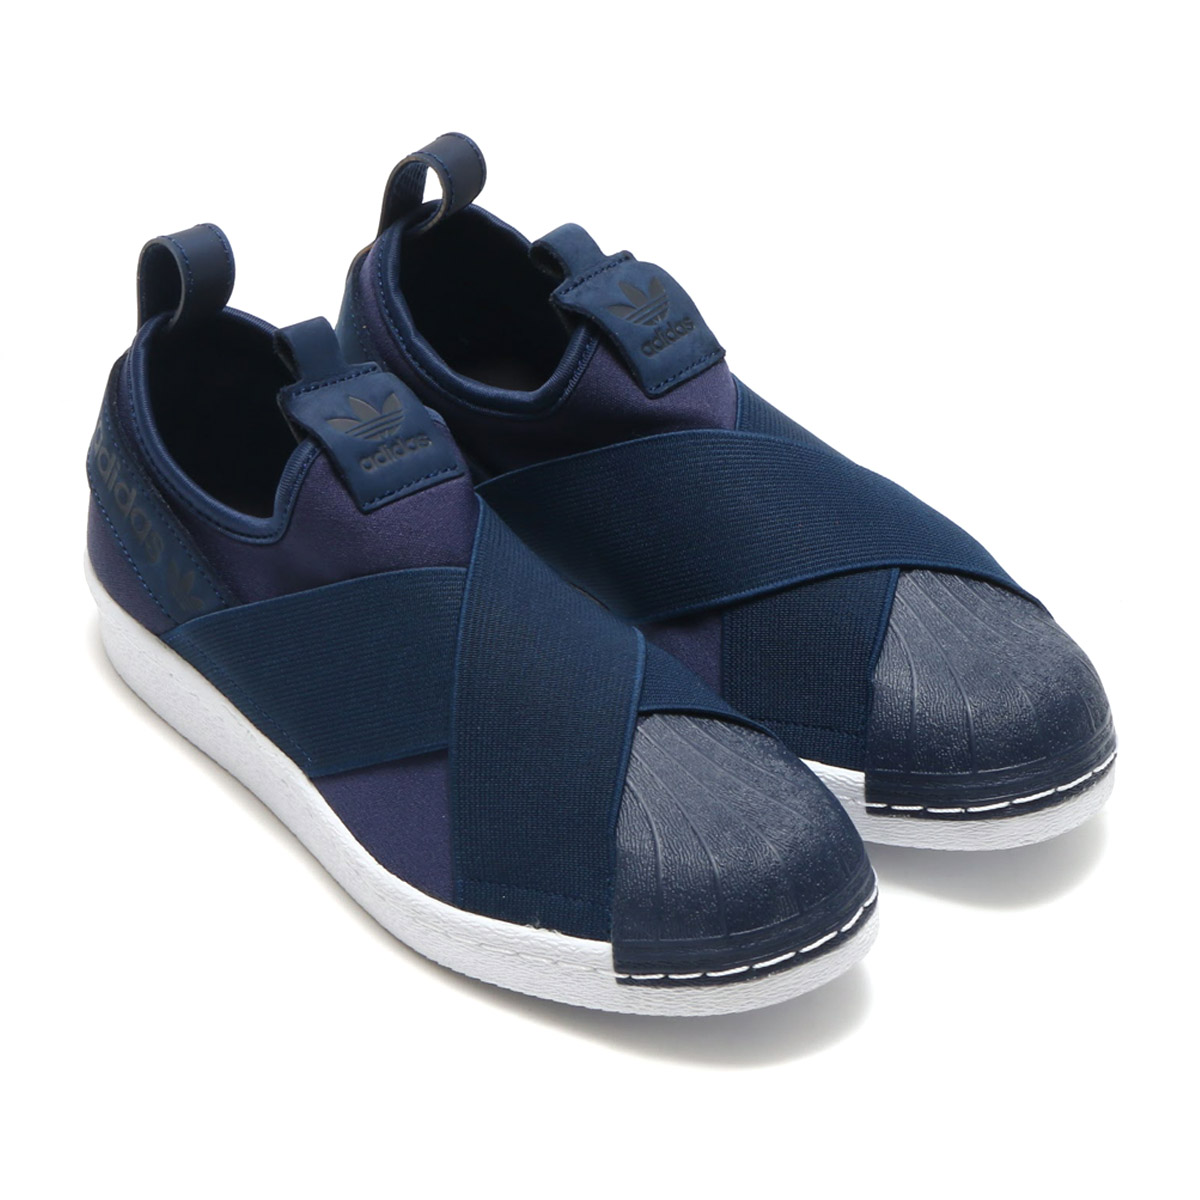 adidas slip on navy